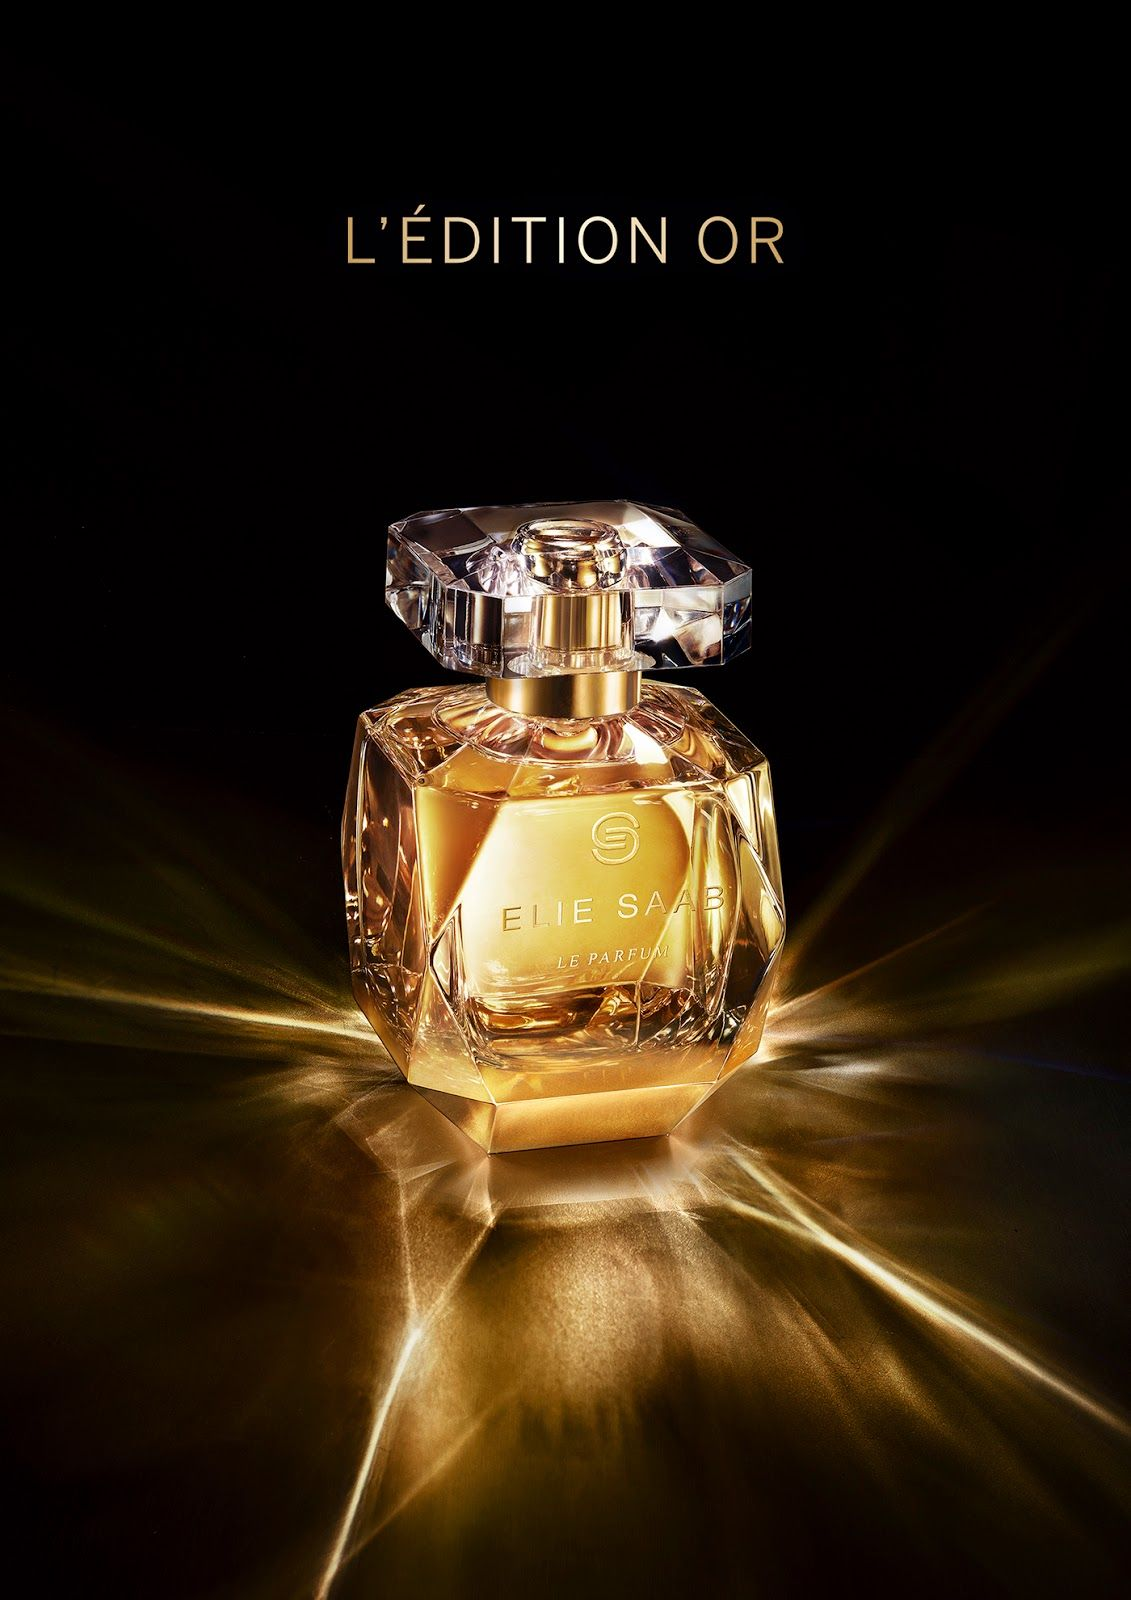 Elie Saab Le Parfum L Edition D Or For Holidays 2014 Celebrateingold Perfume Perfume Photography Fragrance